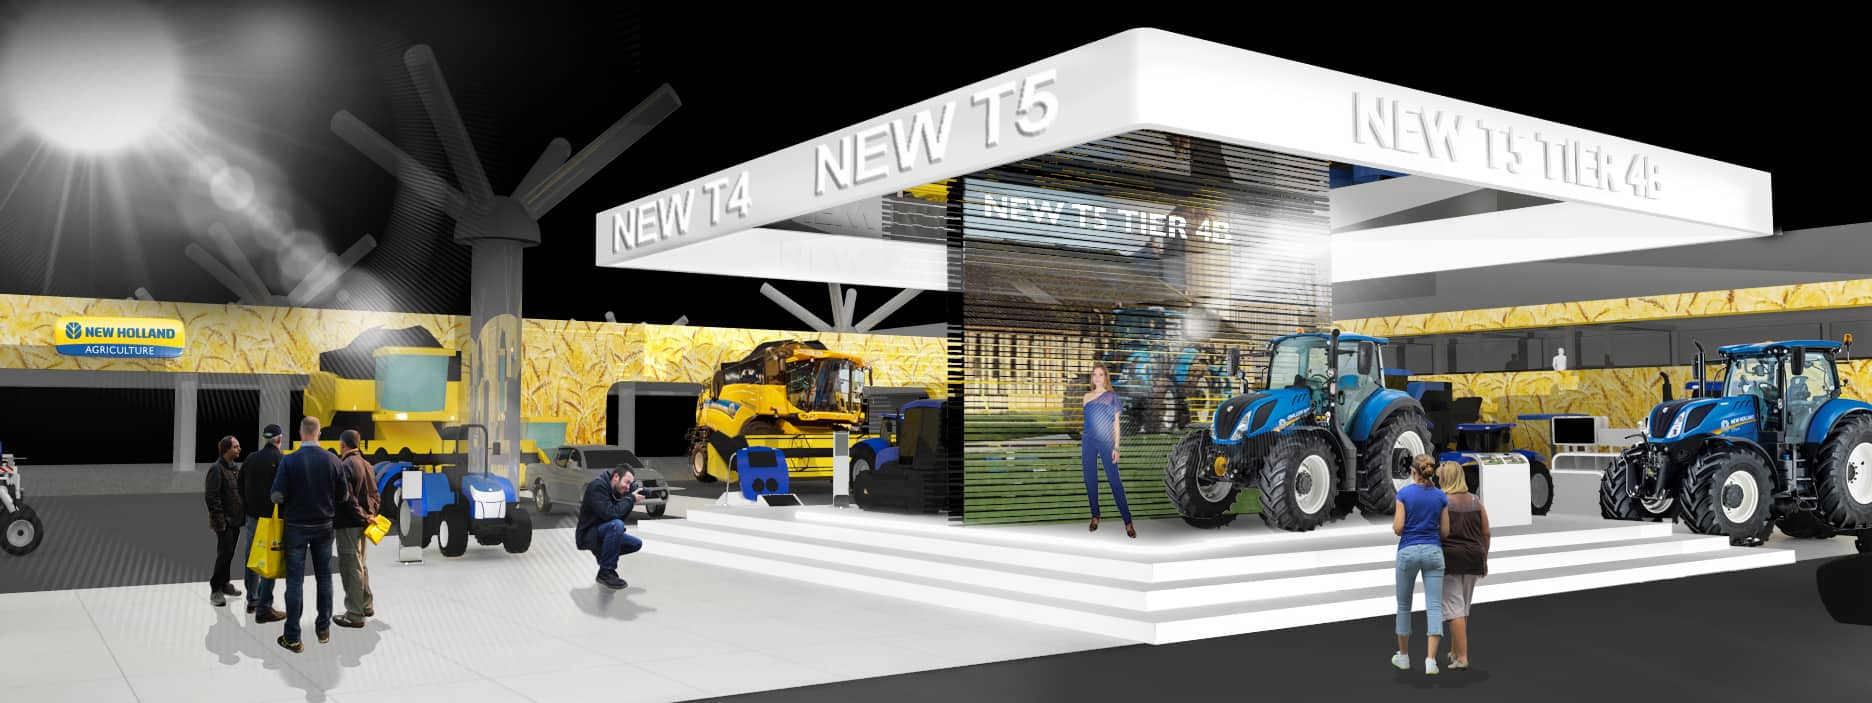 Dove Siamo Eima New Holland Agriculture